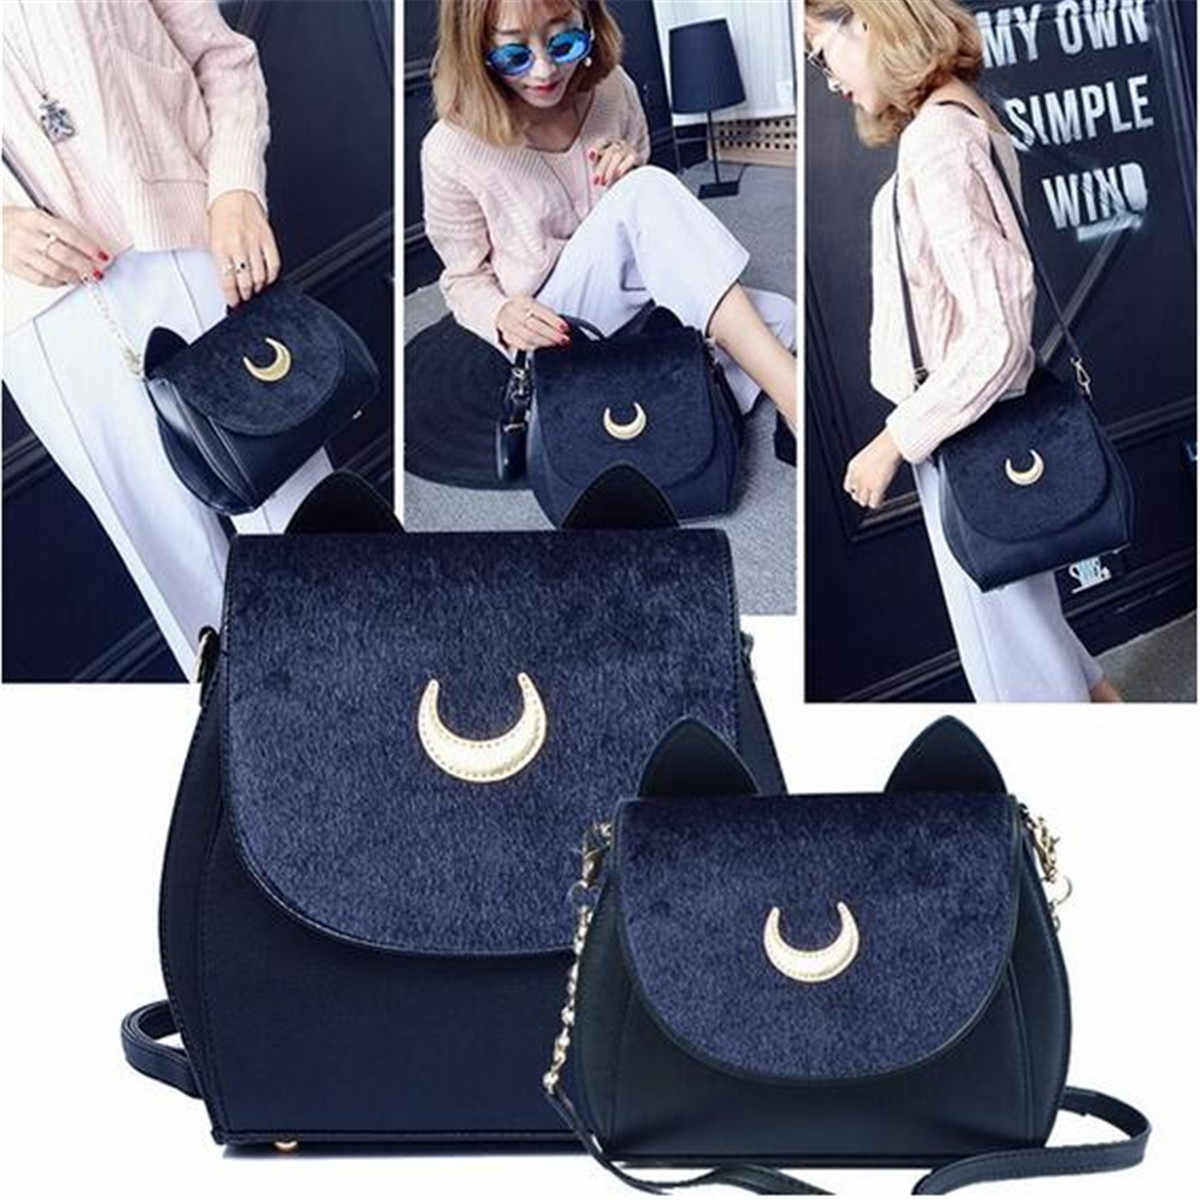 d012fefbfb6 Detail Feedback Questions about AEQUEEN 2019 Sailor Moon Bag Women ...